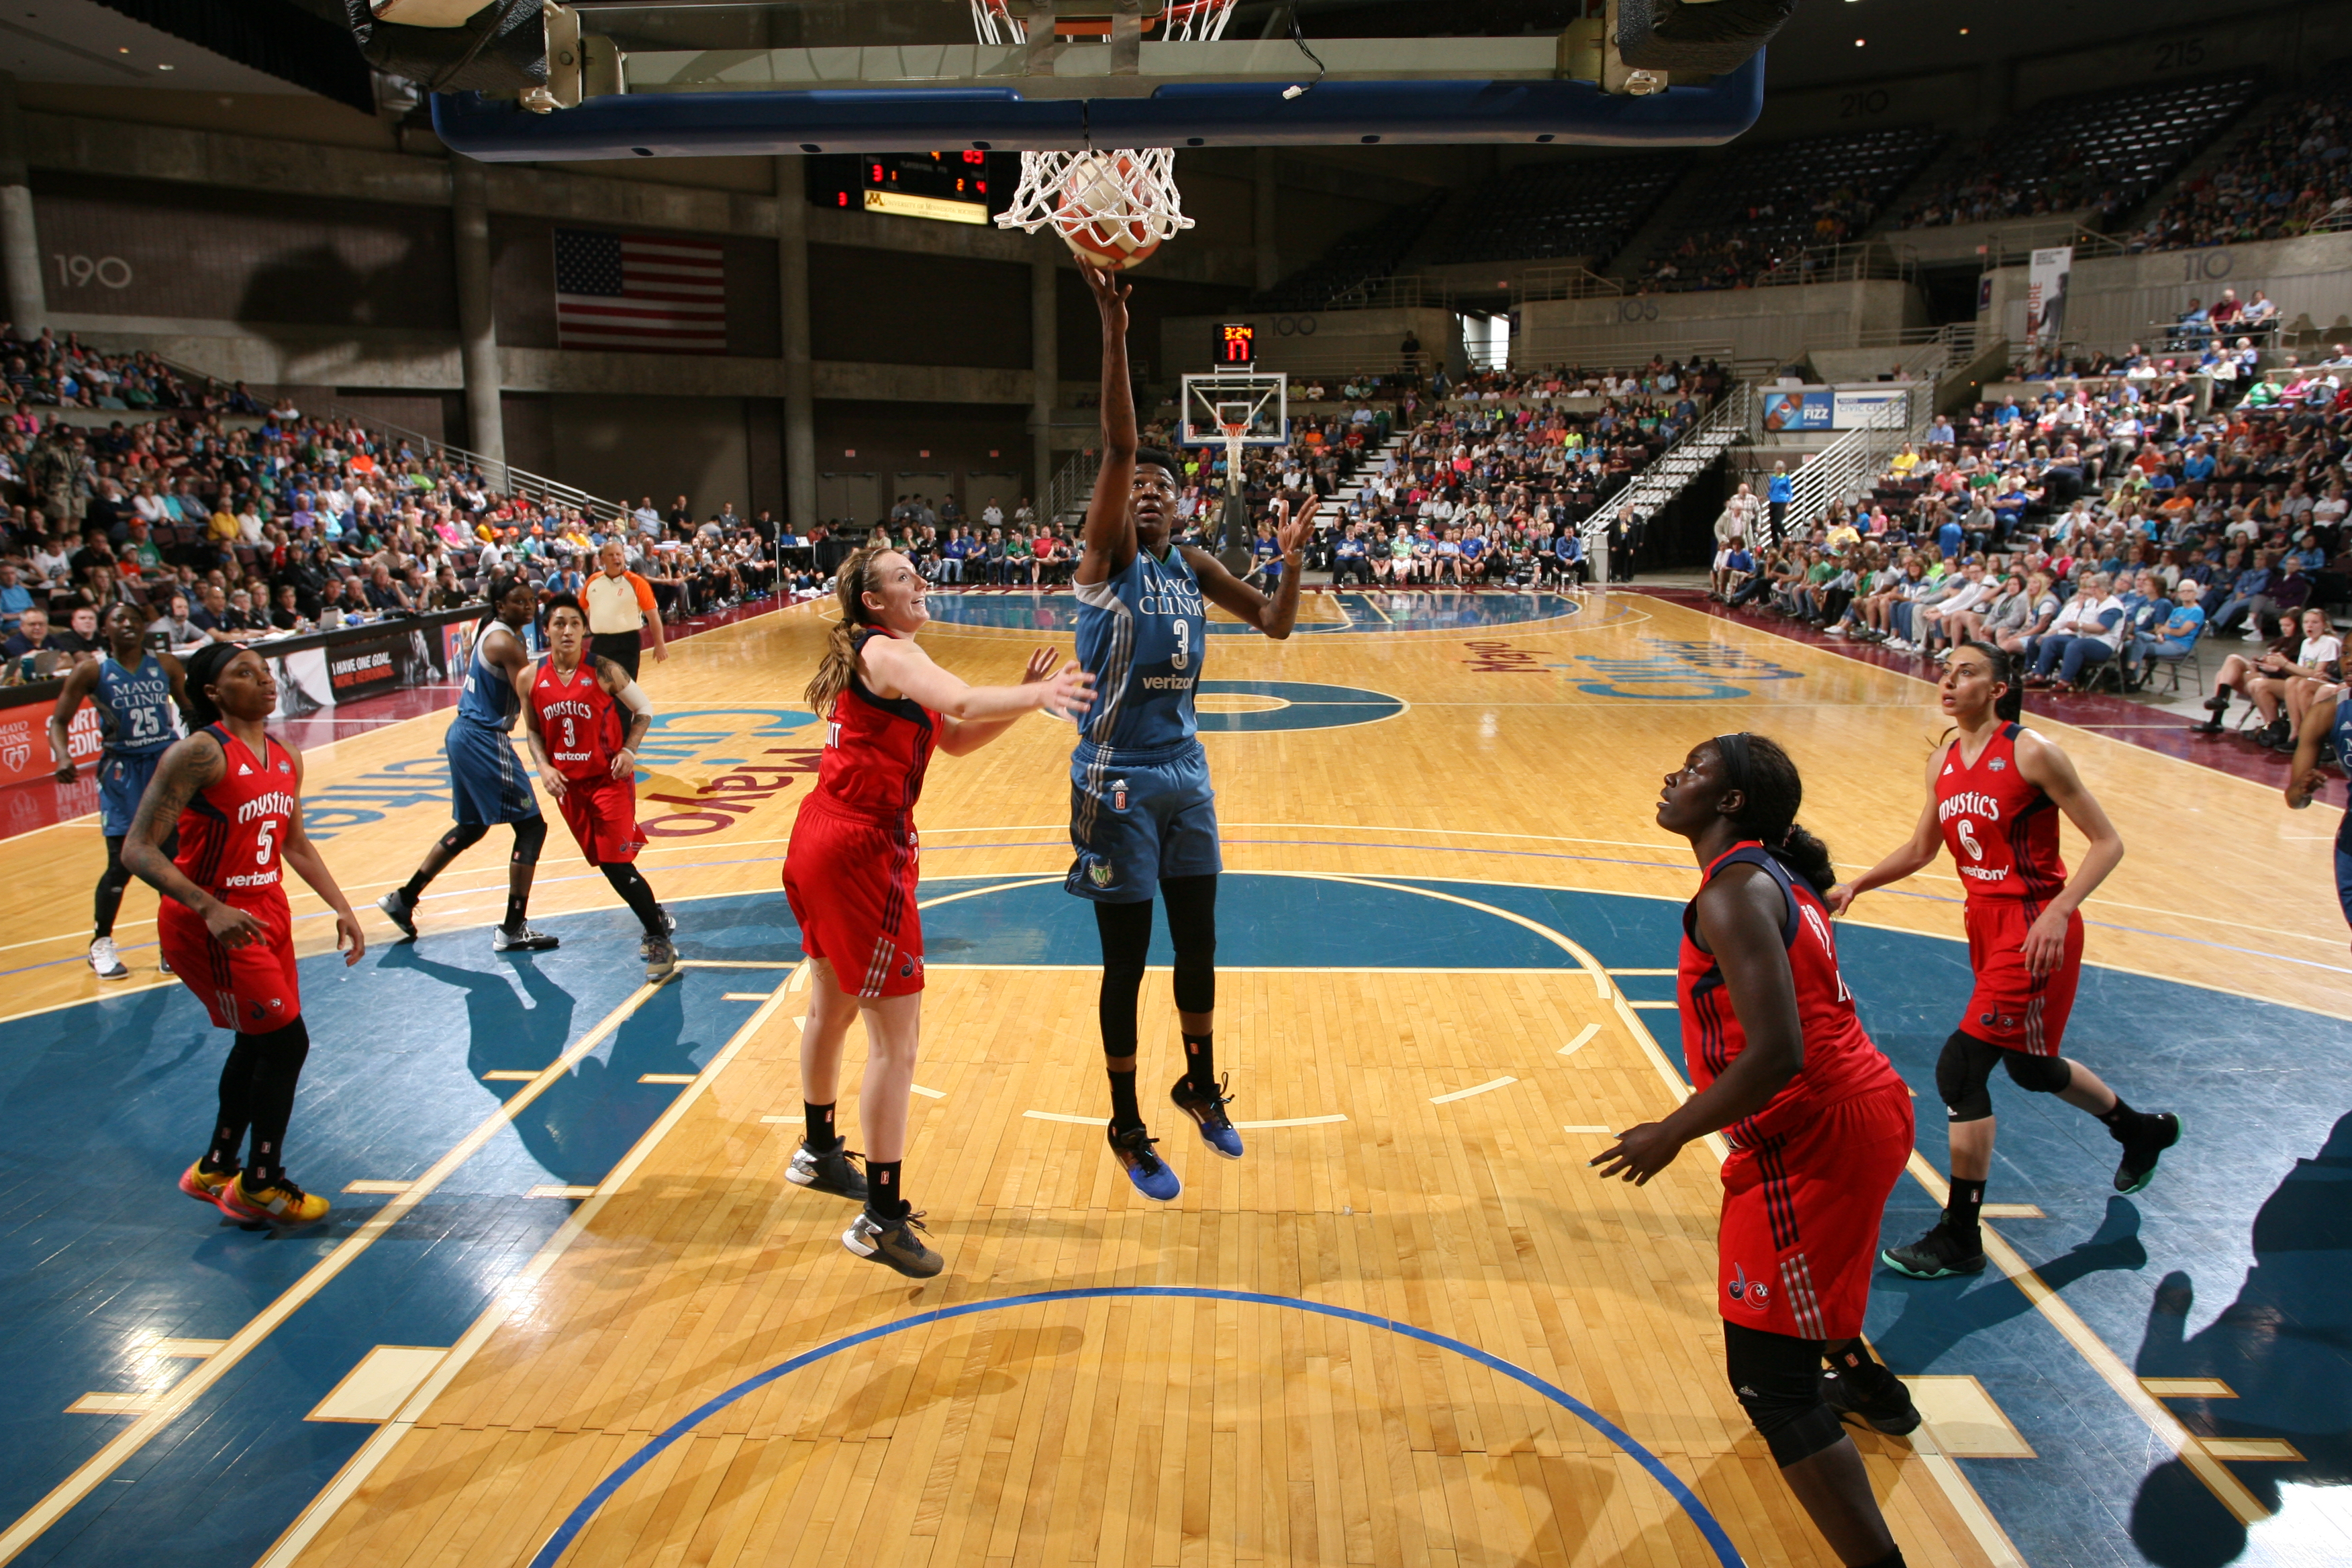 ROCHESTER, MN - MAY 8: Natasha Howard #3 of the Minnesota Lynx goes for the lay-up against Ally Malott #11 of the Washington Mystics during the preseason game on May 8, 2016 at the Mayo Civic Center in Rochester, Minnesota. NOTE TO USER: User expressly acknowledges and agrees that, by downloading and or using this Photograph, user is consenting to the terms and conditions of the Getty Images License Agreement. Mandatory Copyright Notice: Copyright 2016 NBAE (Photo by David Sherman/NBAE via Getty Images)